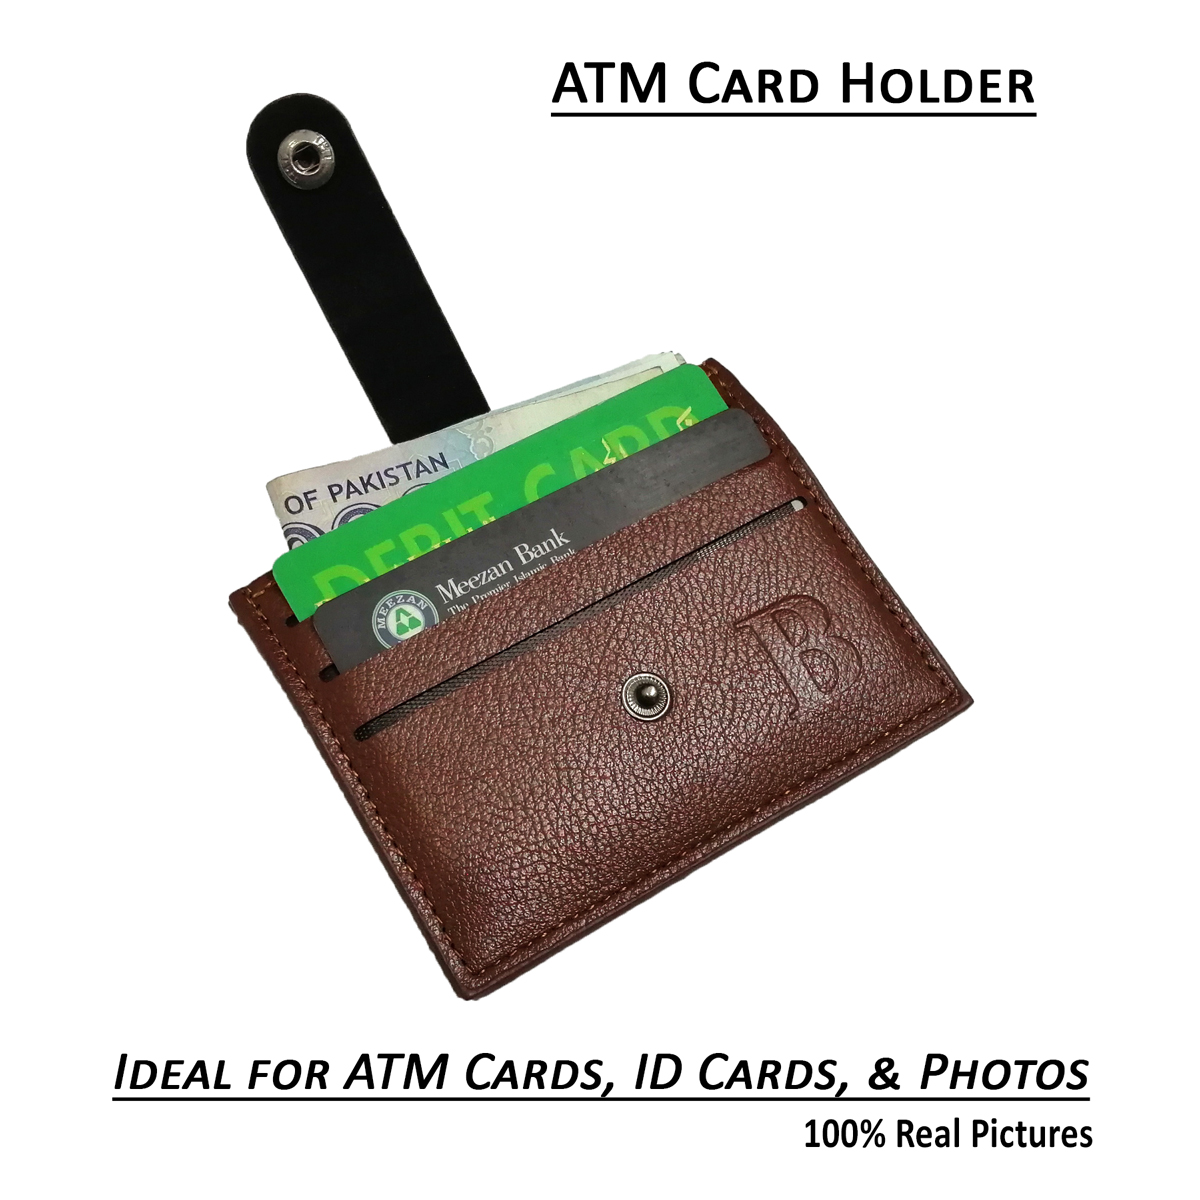 Hot Selling Mini Wallet for ATM Cards Space Saving Card Holder Wallets for Unisex in 3 Styles in Black and Brown